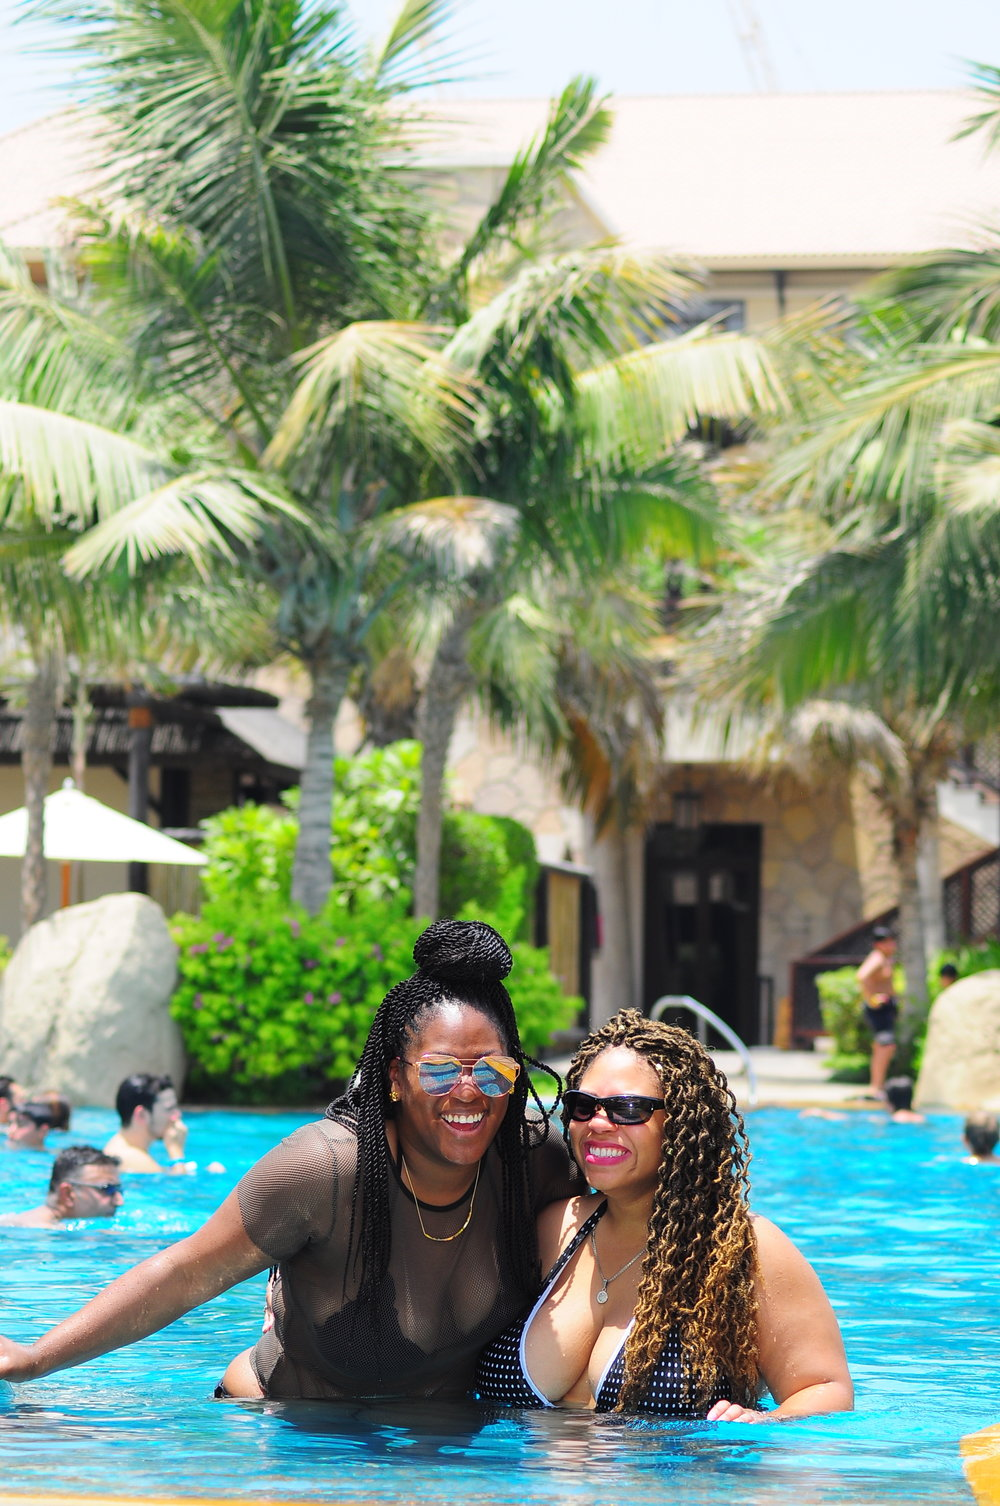 hanging out poolside at the Sofitel Dubai The Palm